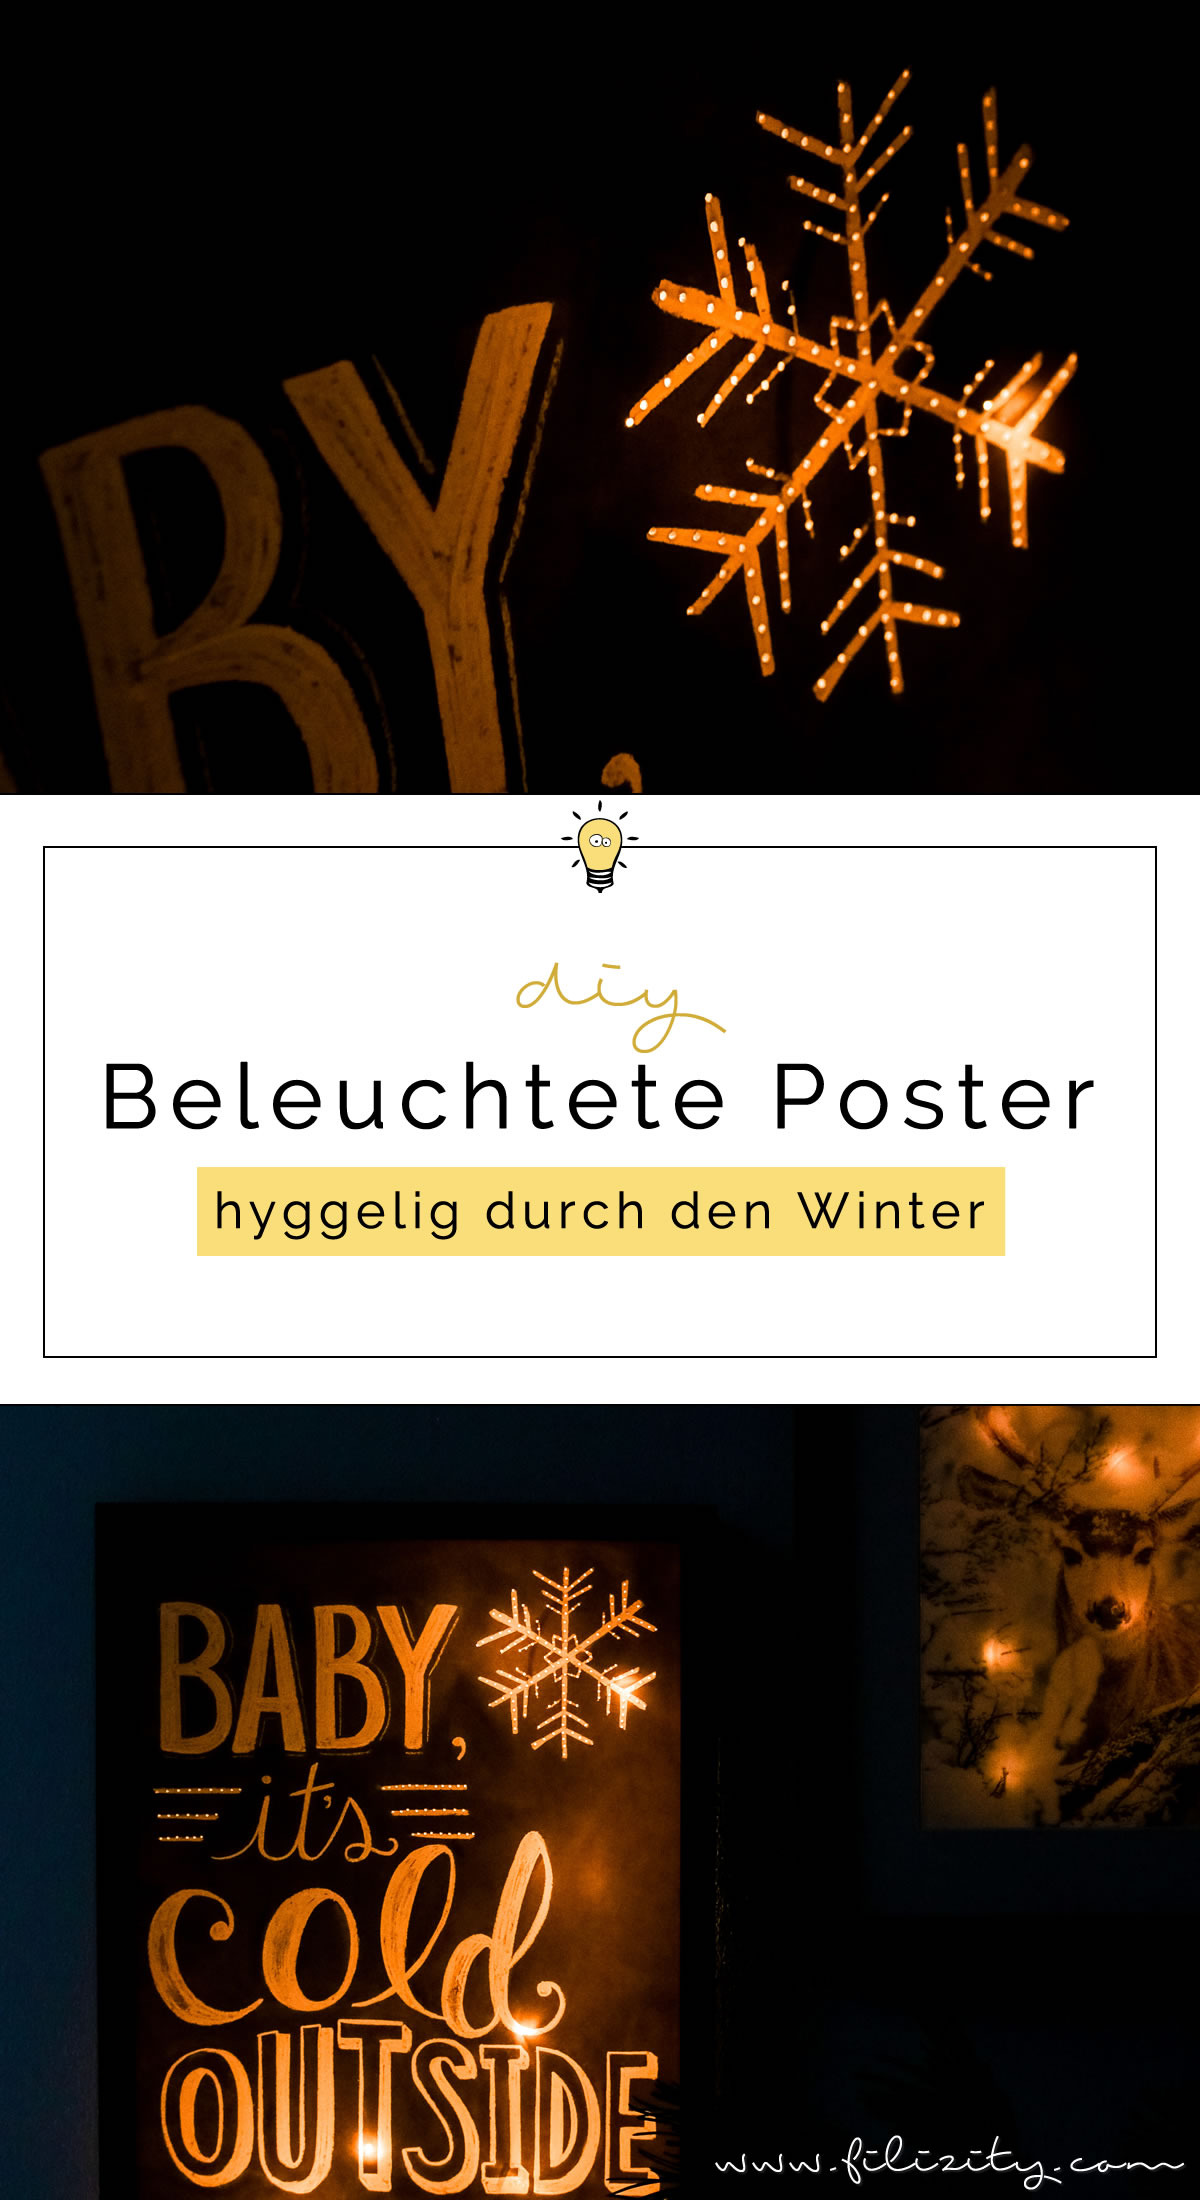 hyggelige winterdeko beleuchtete poster selber machen diy blog aus dem rheinland. Black Bedroom Furniture Sets. Home Design Ideas